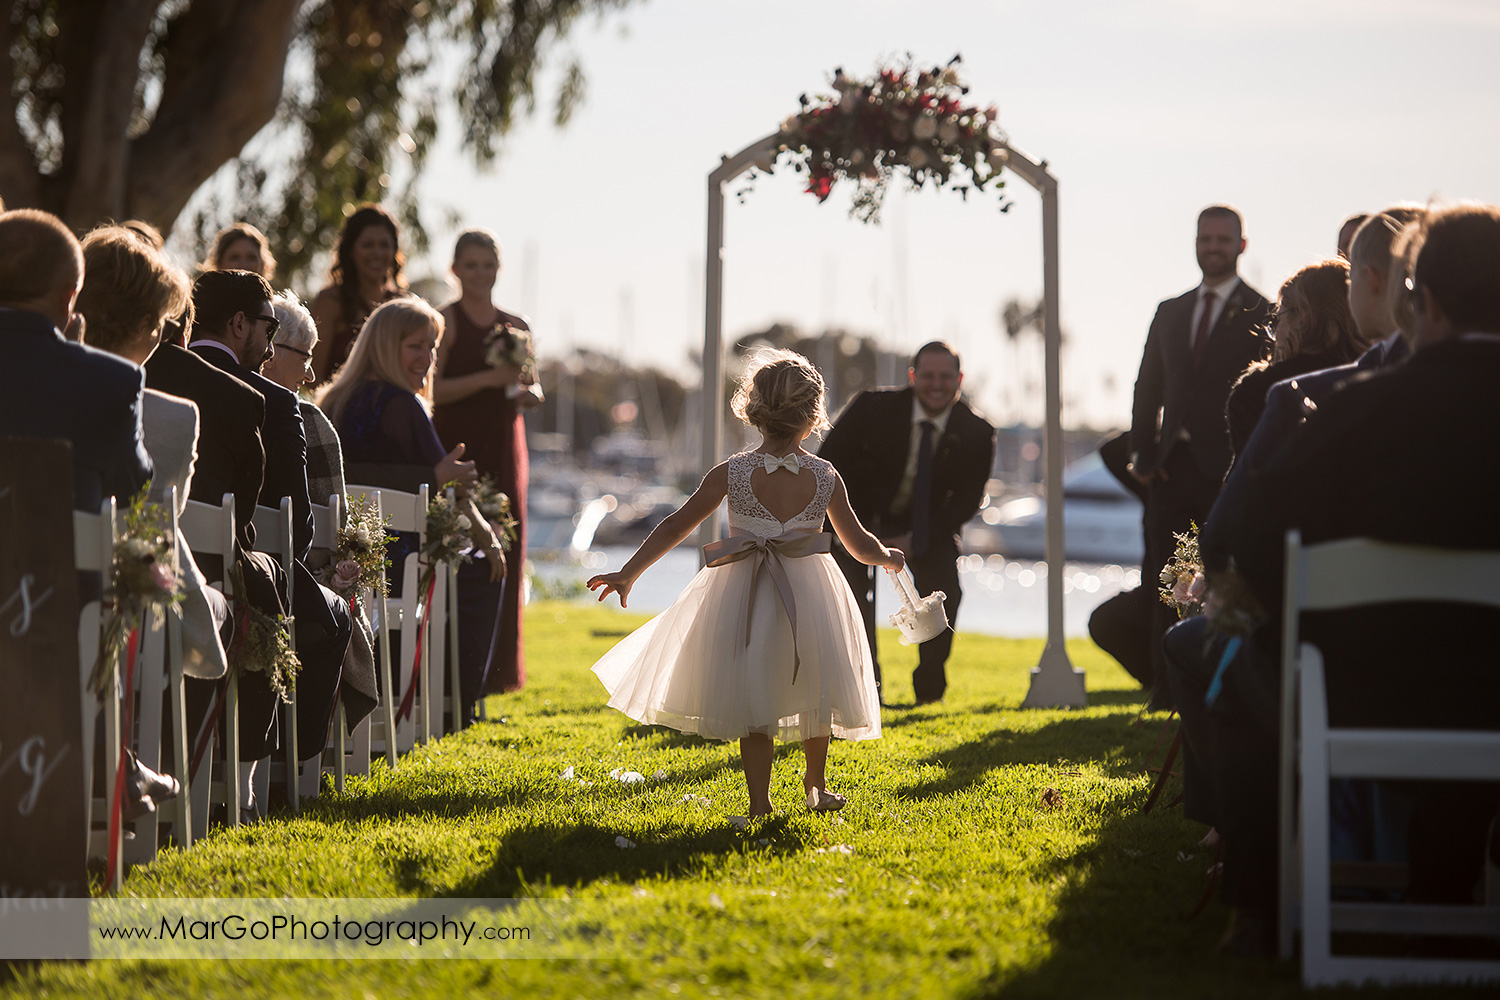 flower girl going down the aisle during wedding ceremony at San Diego Marina Village